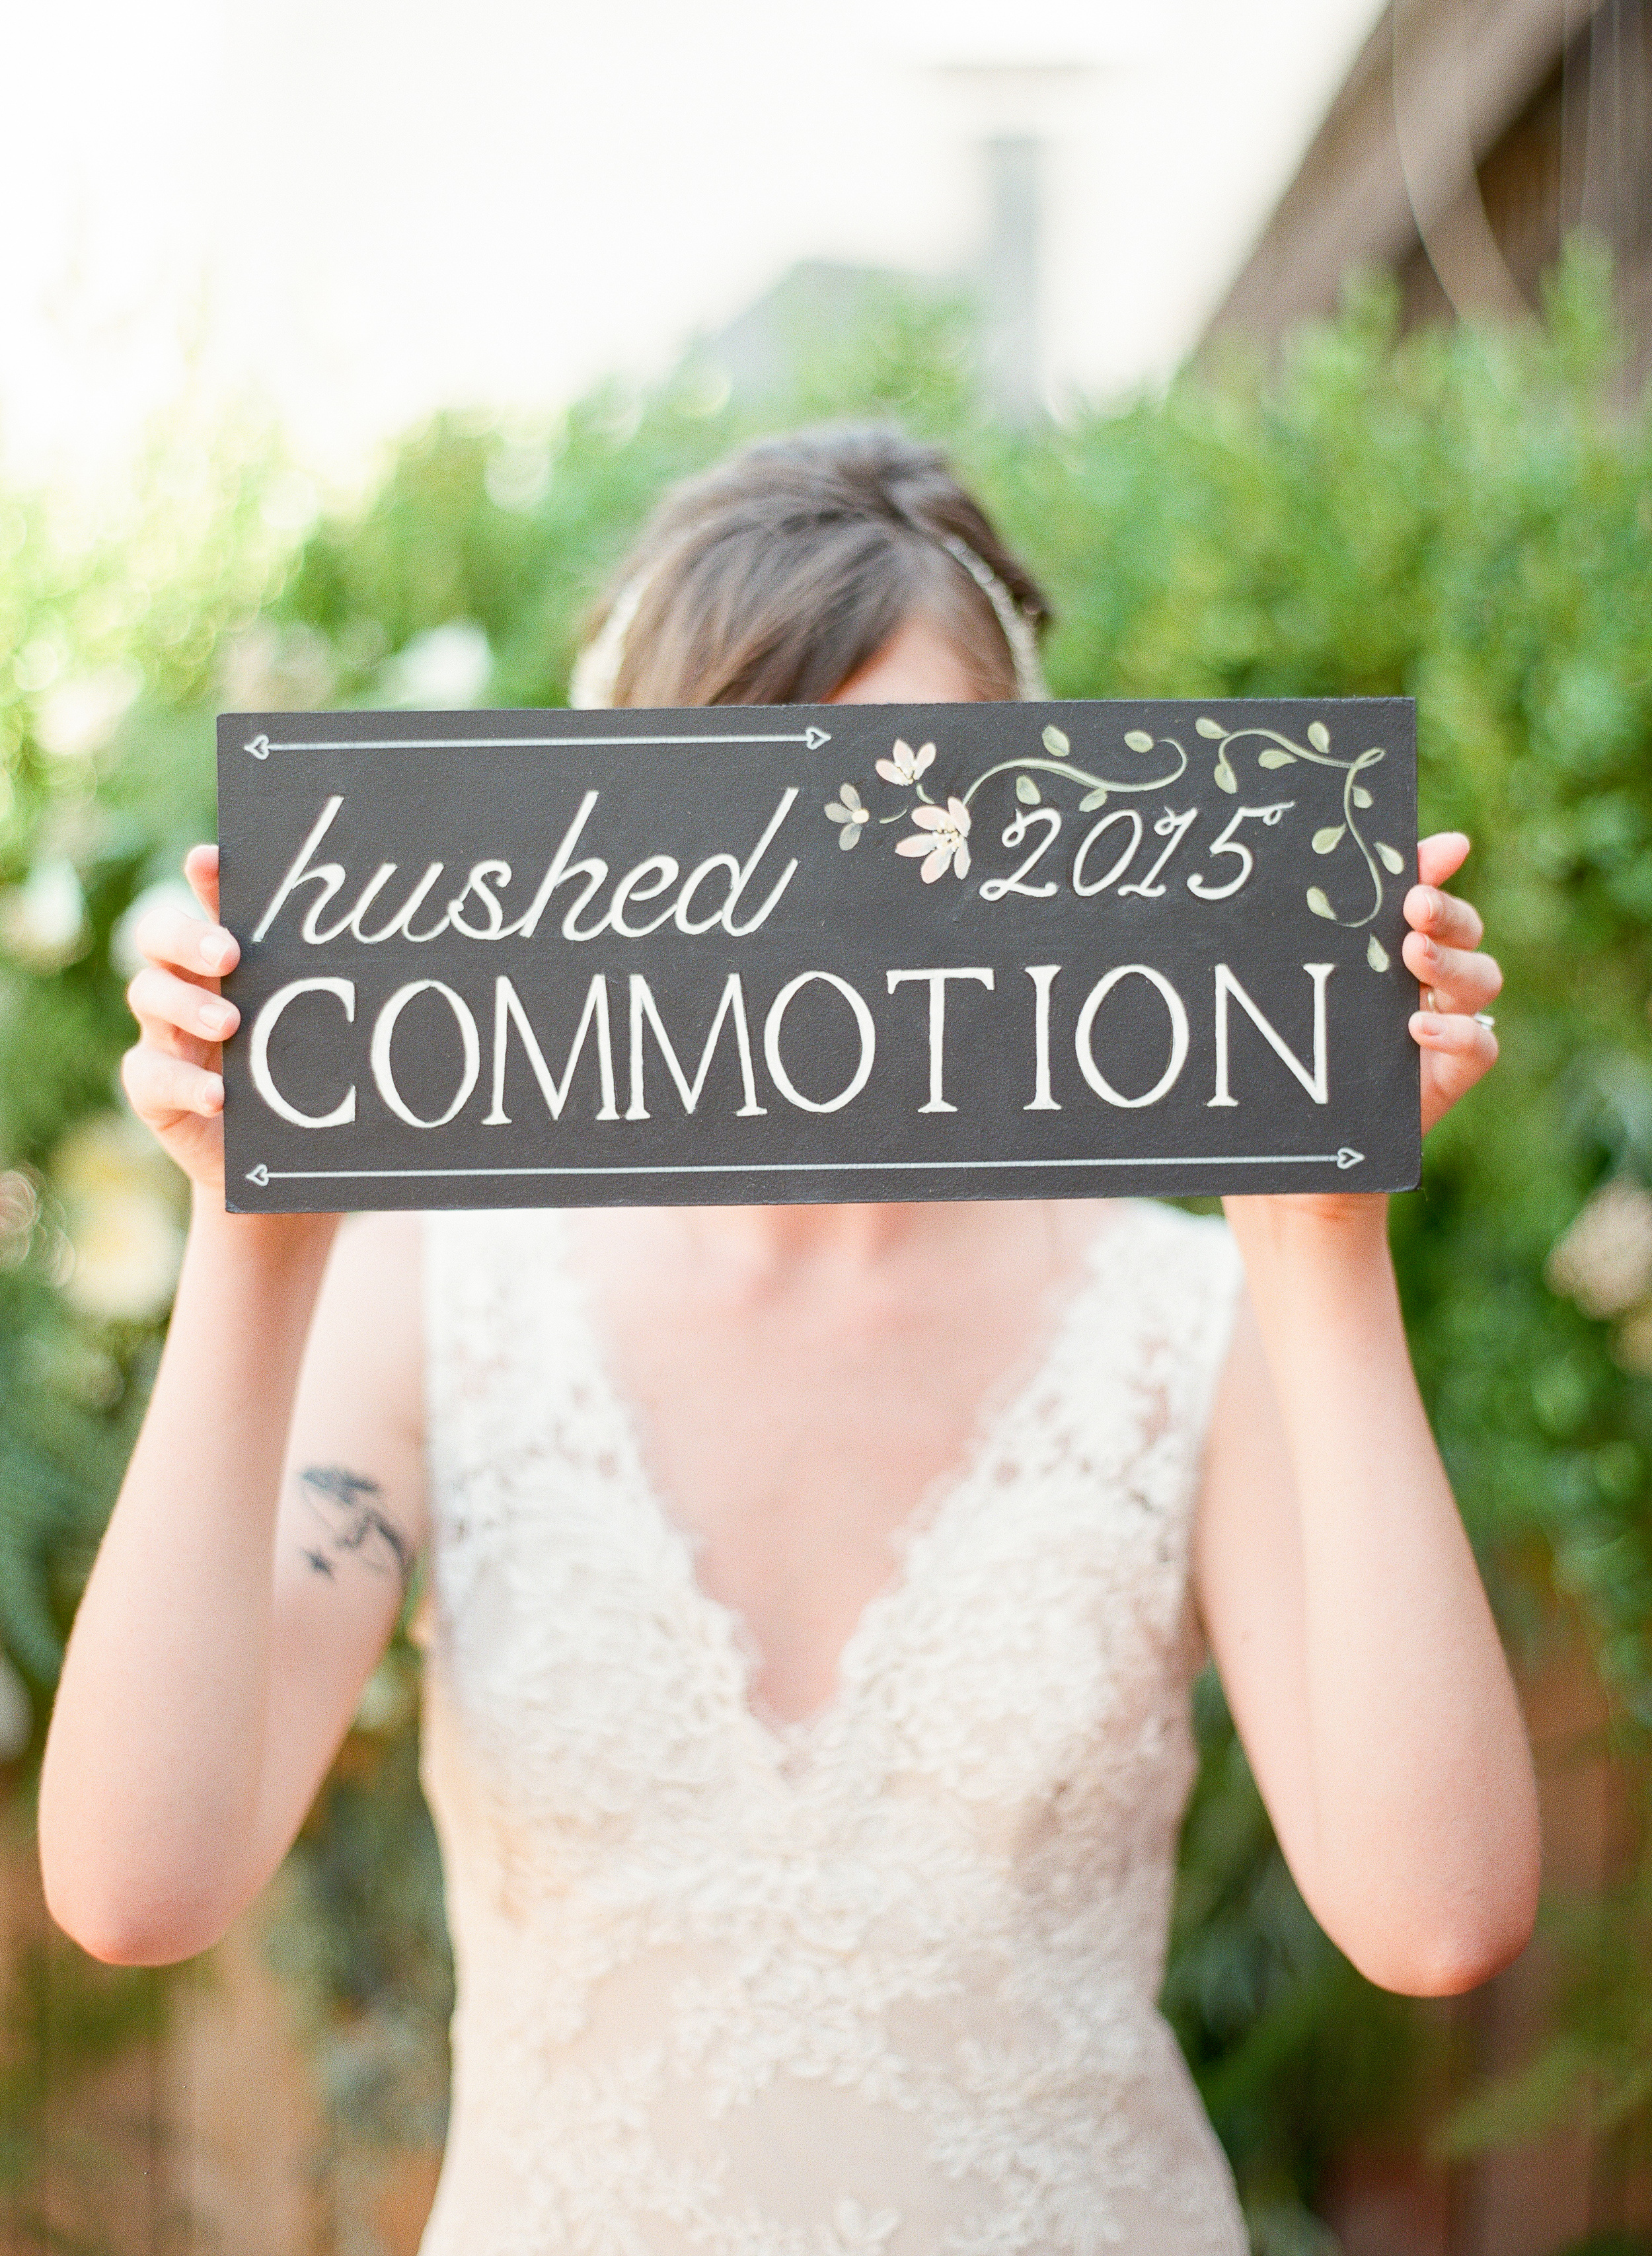 hushed commotion 2015 chalk art